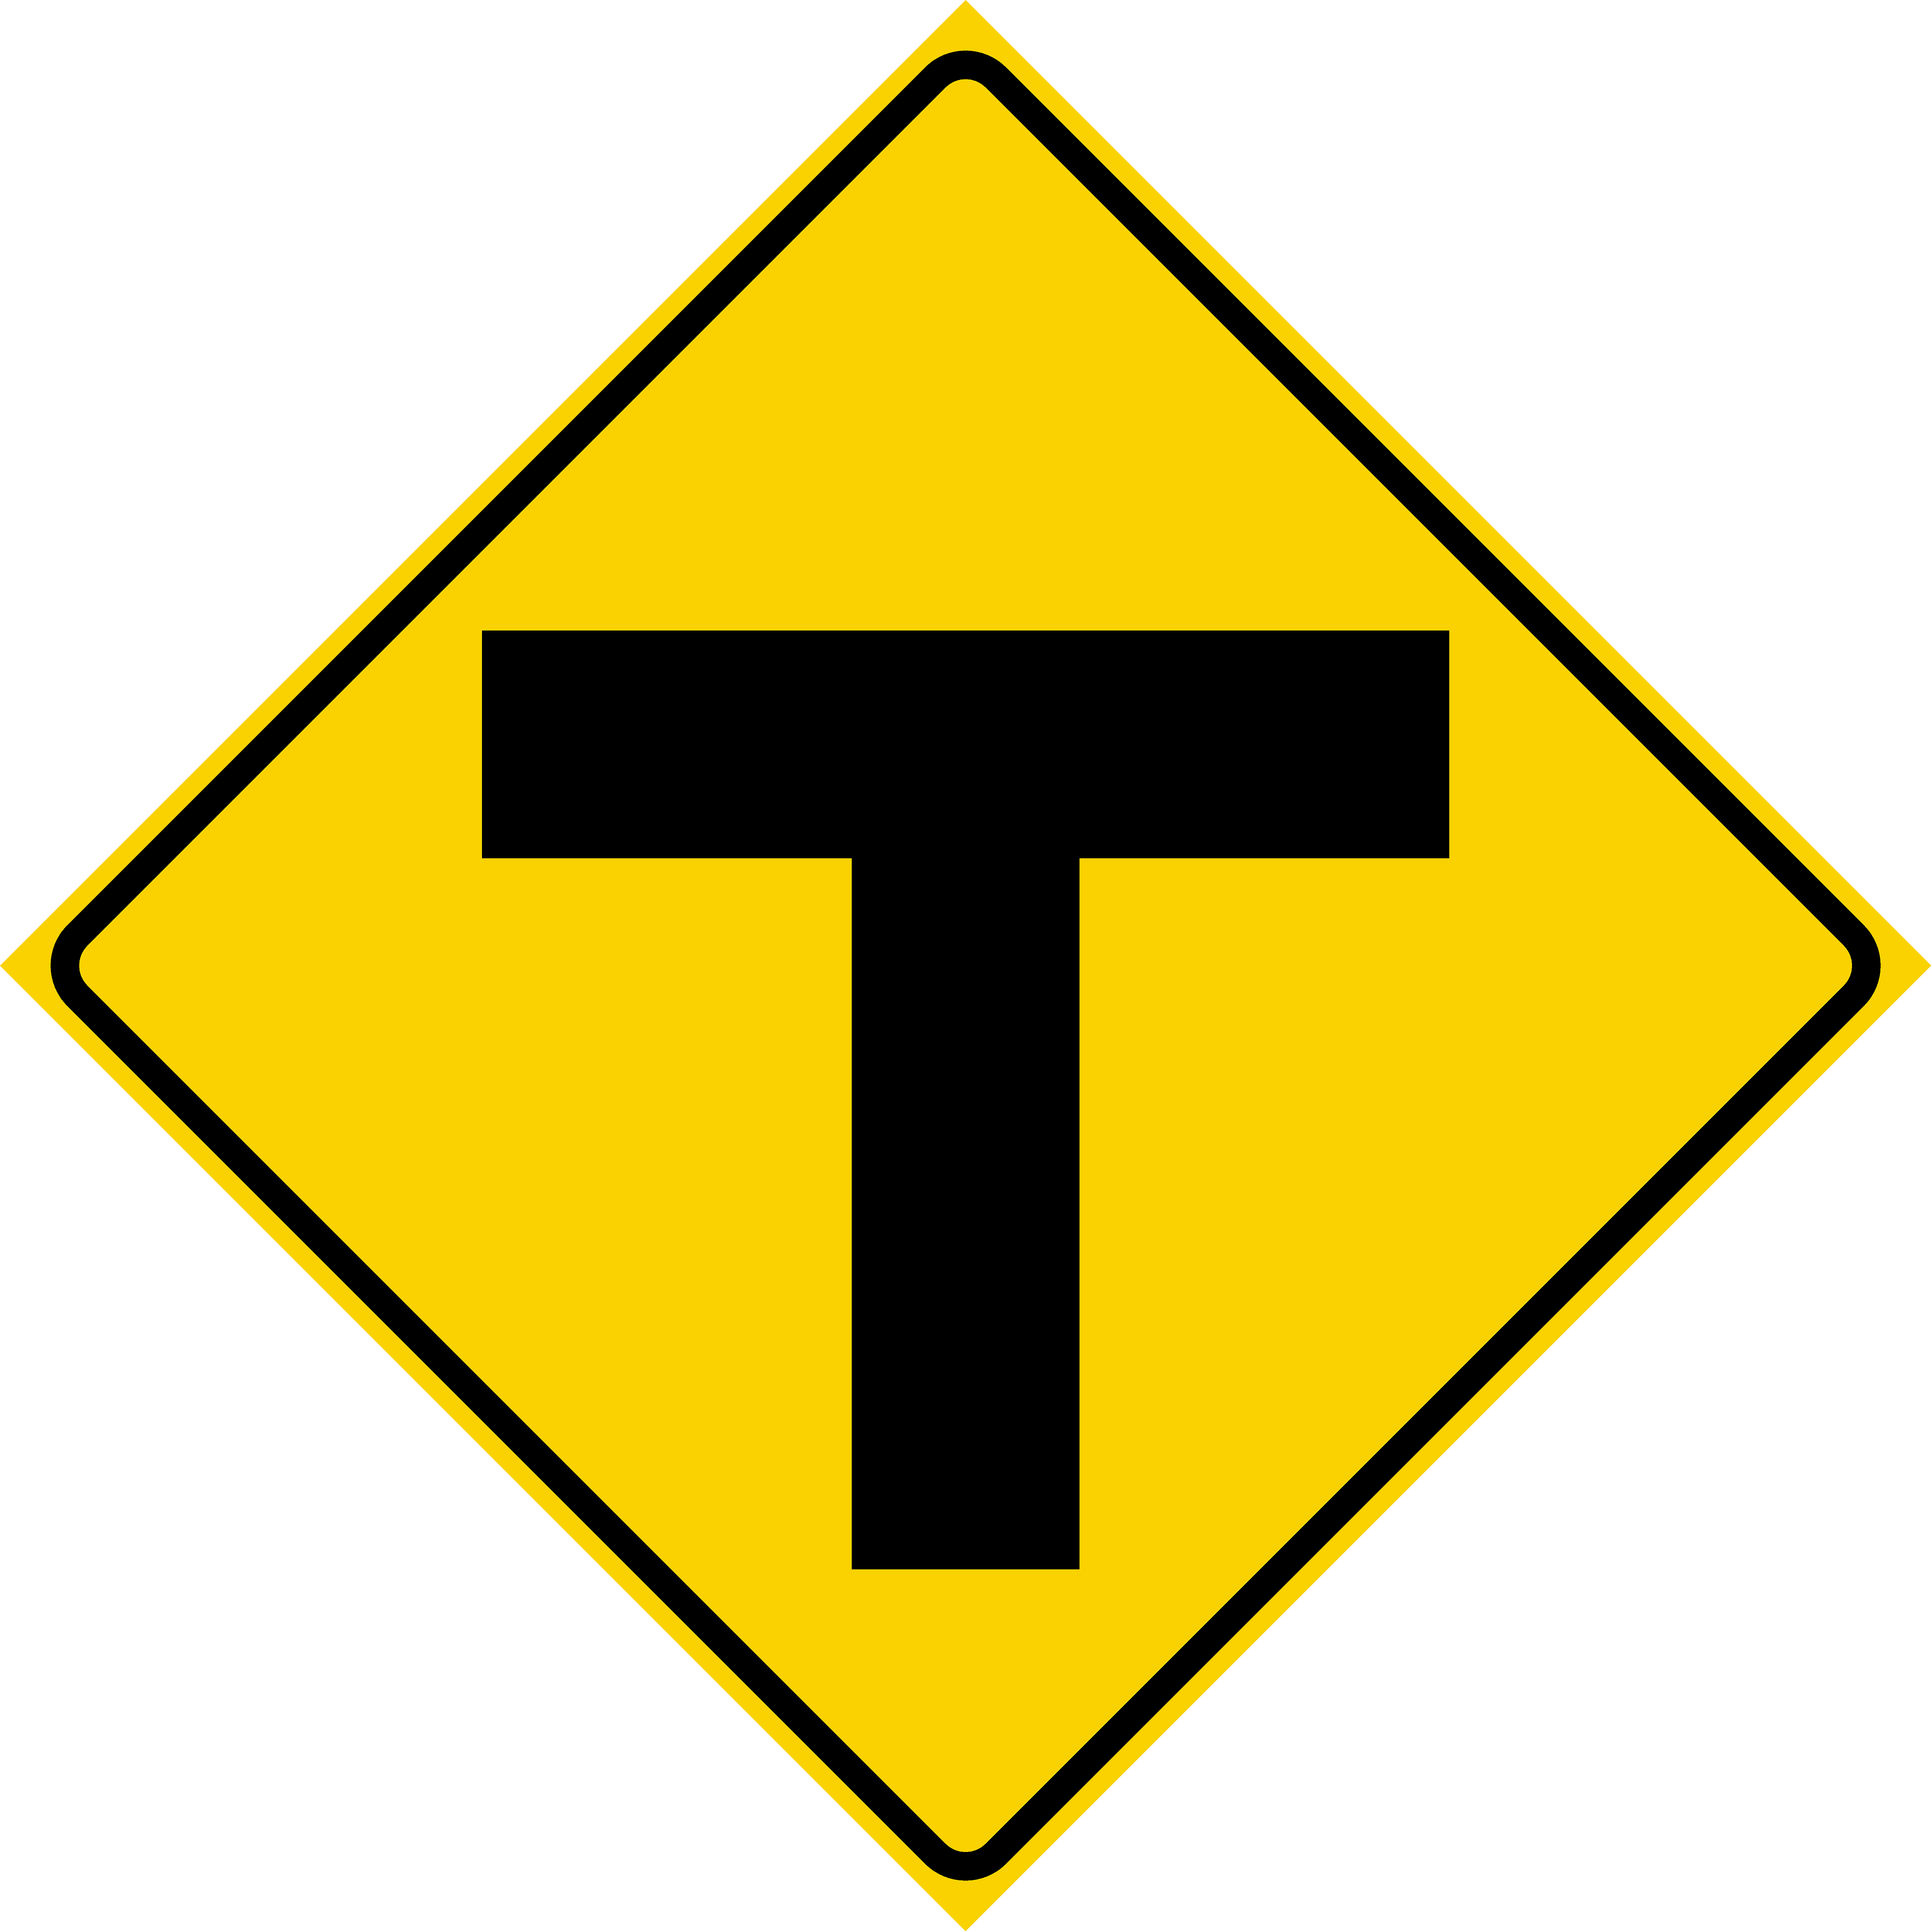 T Intersection (W2-4)